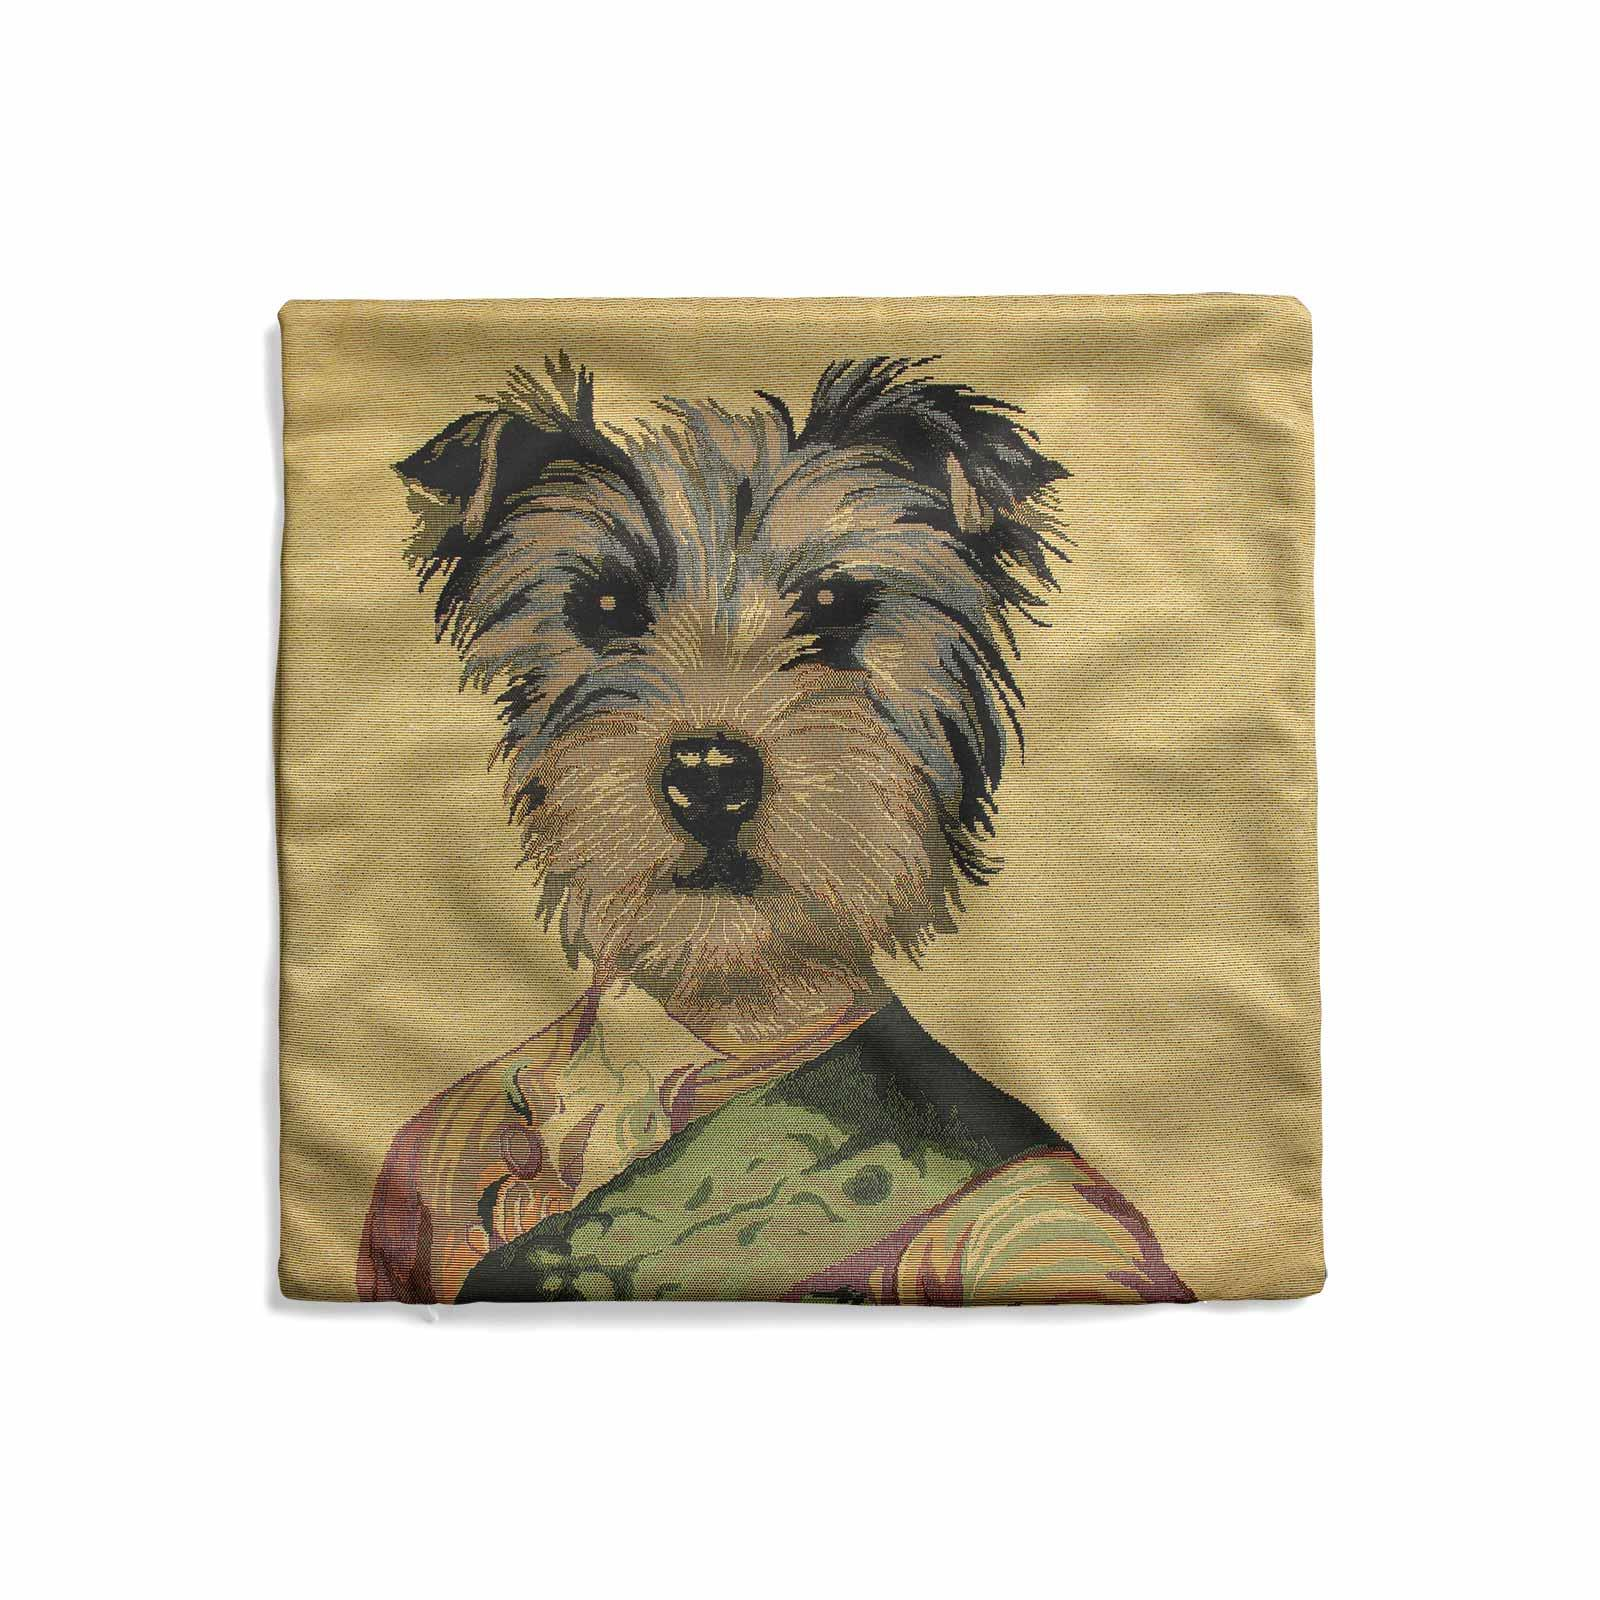 Tapestry-Cushion-Covers-Vintage-Pillow-Cover-Collection-18-034-45cm-Filled-Cushions thumbnail 28